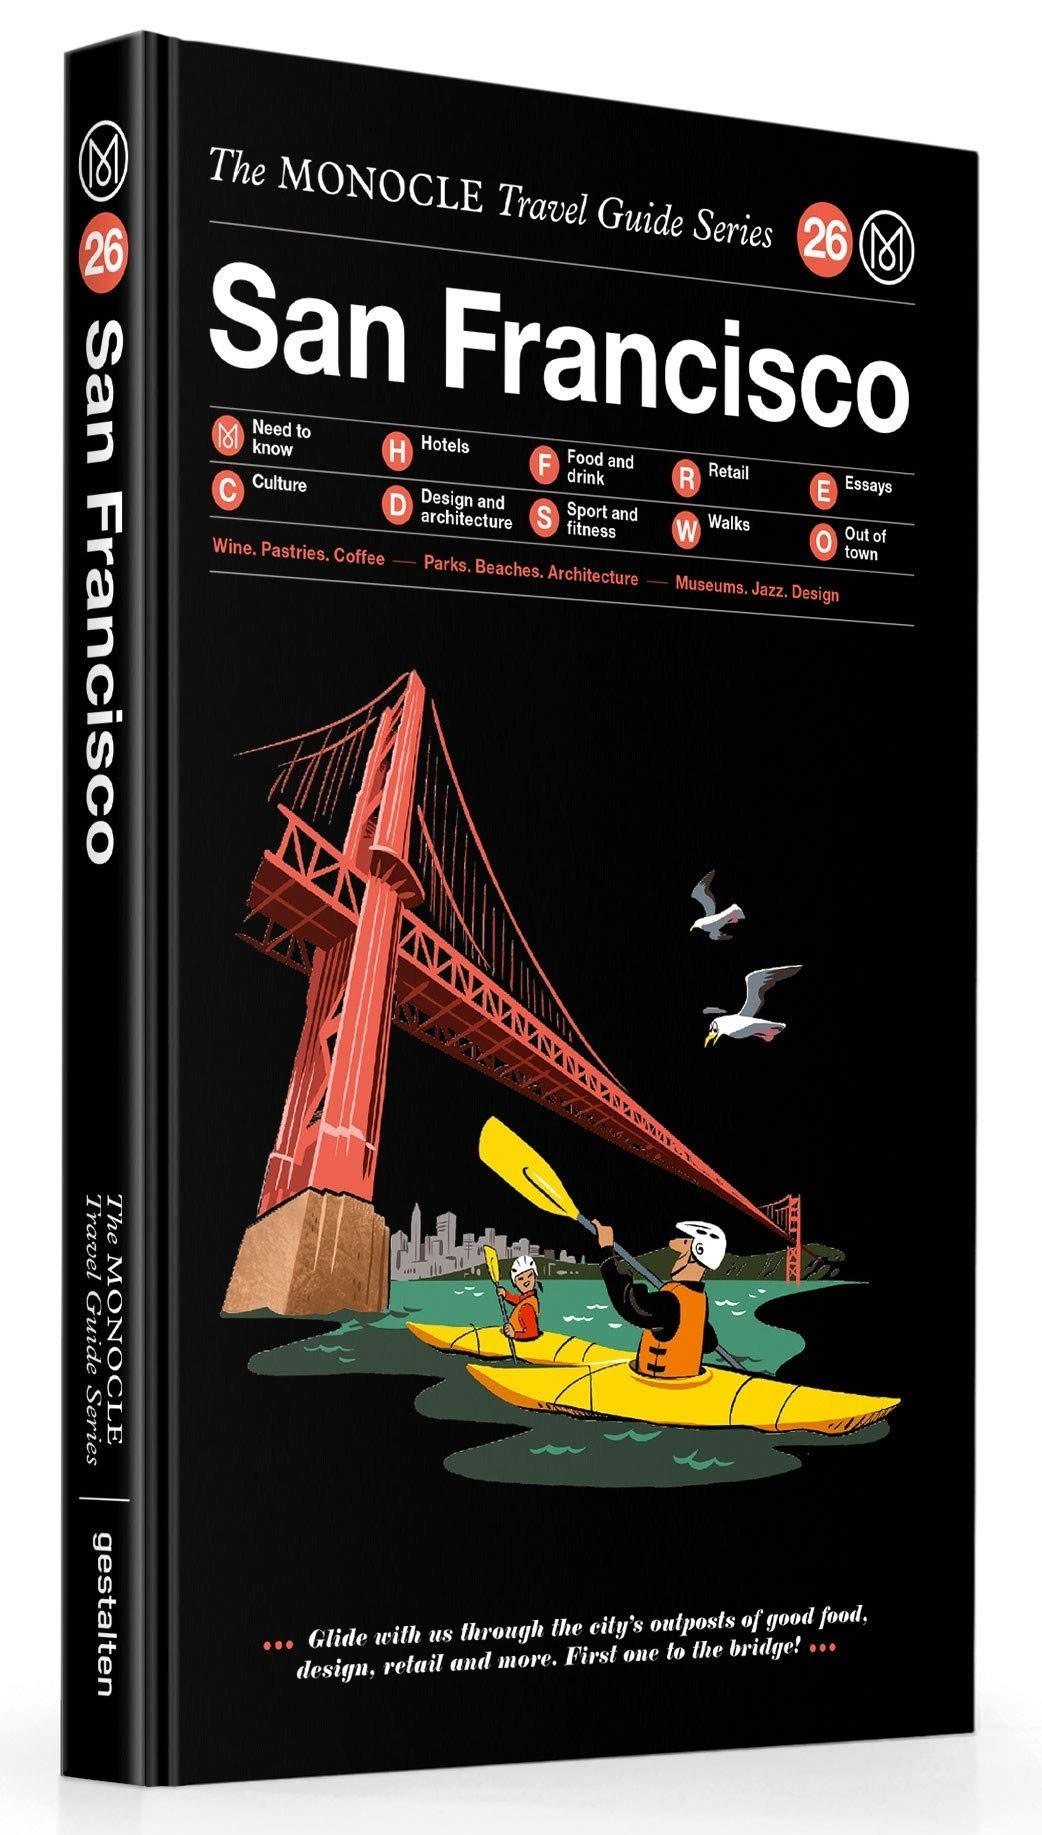 The Monocle Travel Guide to San Francisco: The Monocle Travel Guide Series (Tapa Dura)